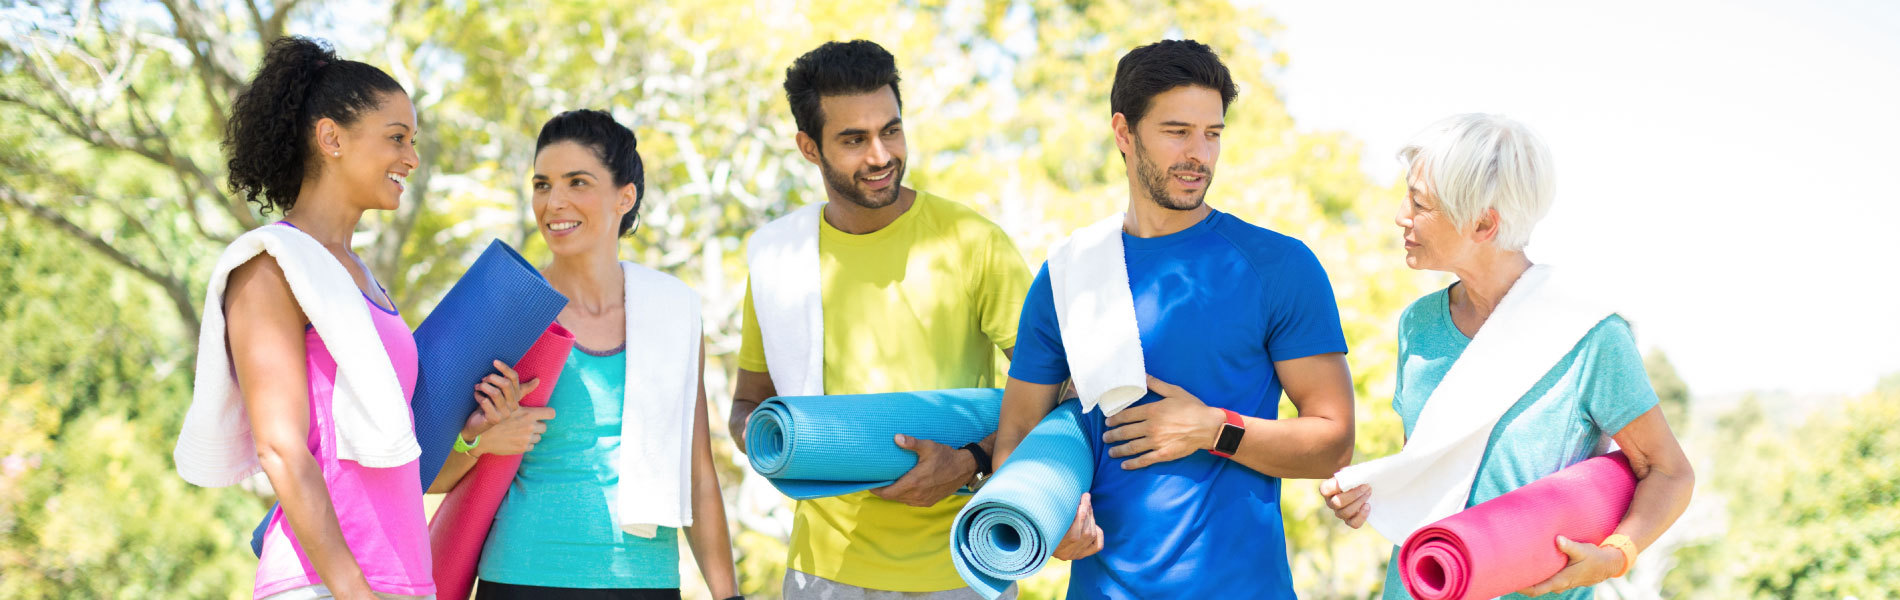 Summer_Parks_Programs_for_Staying_Fit_1900x600.jpg